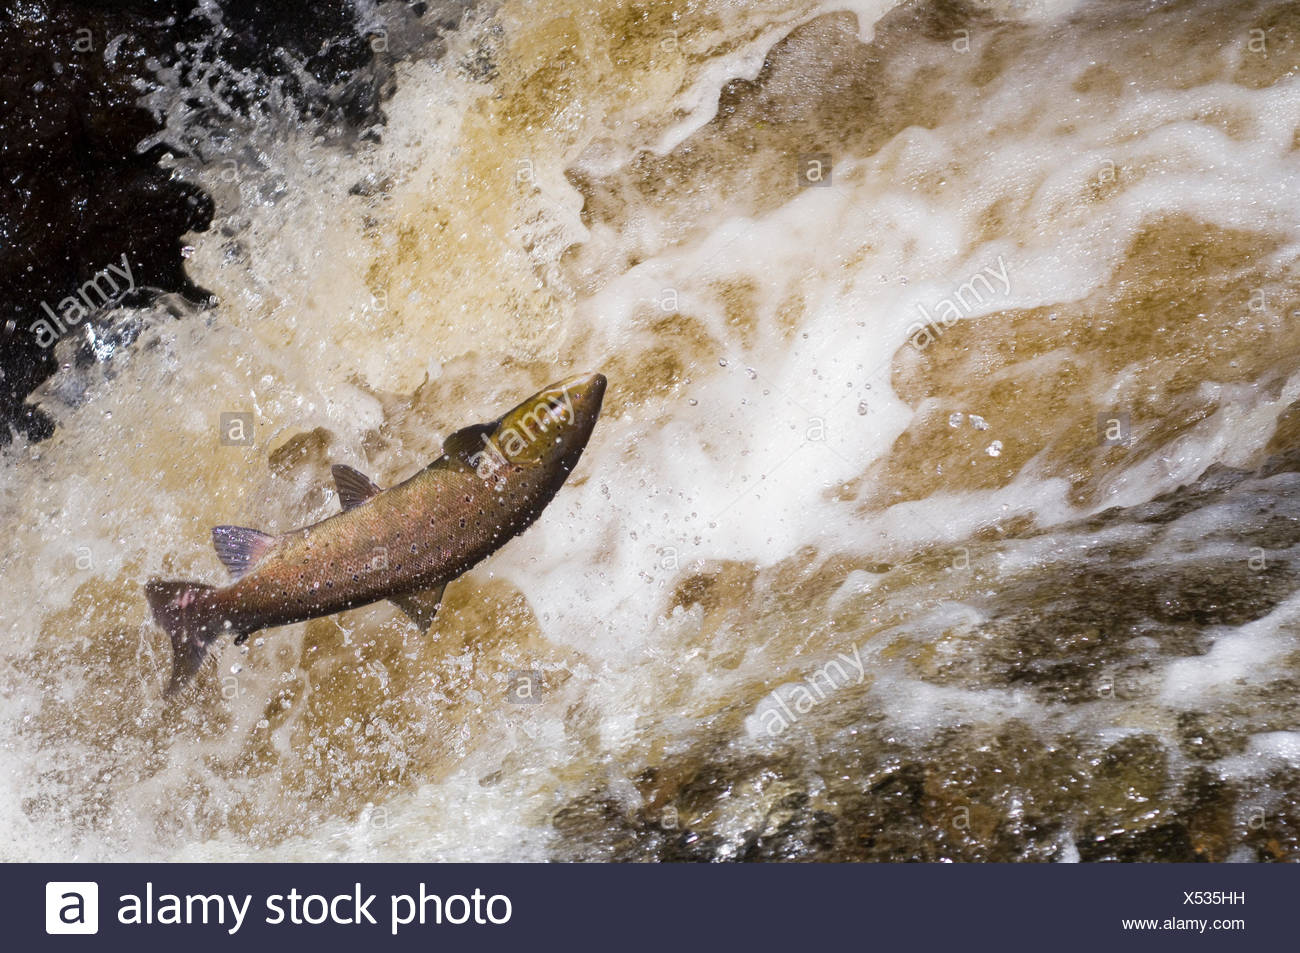 Atlantic salmon {Salmo salar} leaping up waterfall on migration and falling back into the water, Perthshire, Scotland, UK 2006 - Stock Image